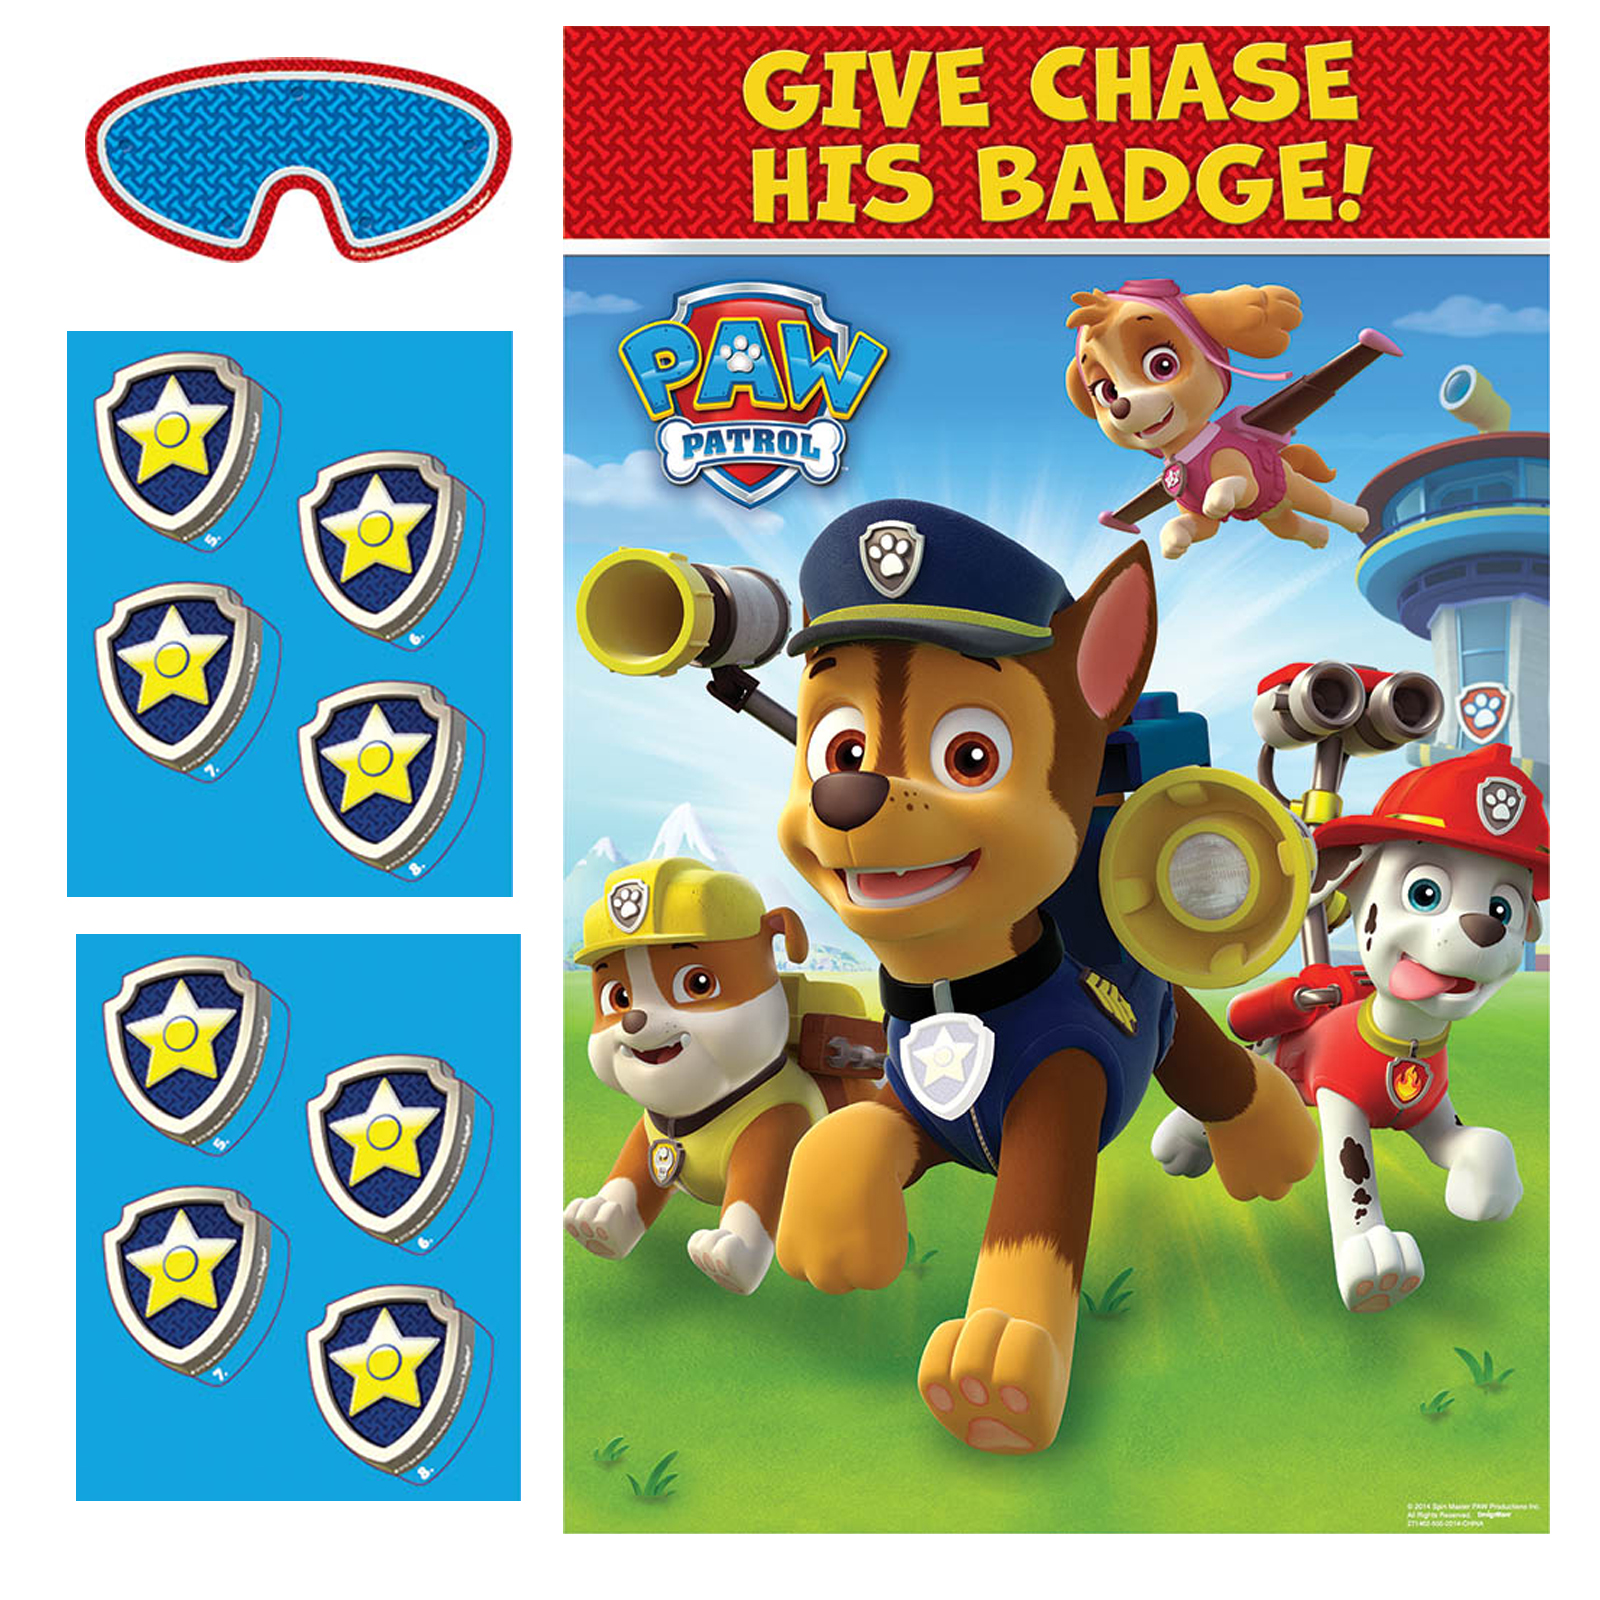 Paw patrol holiday party game images